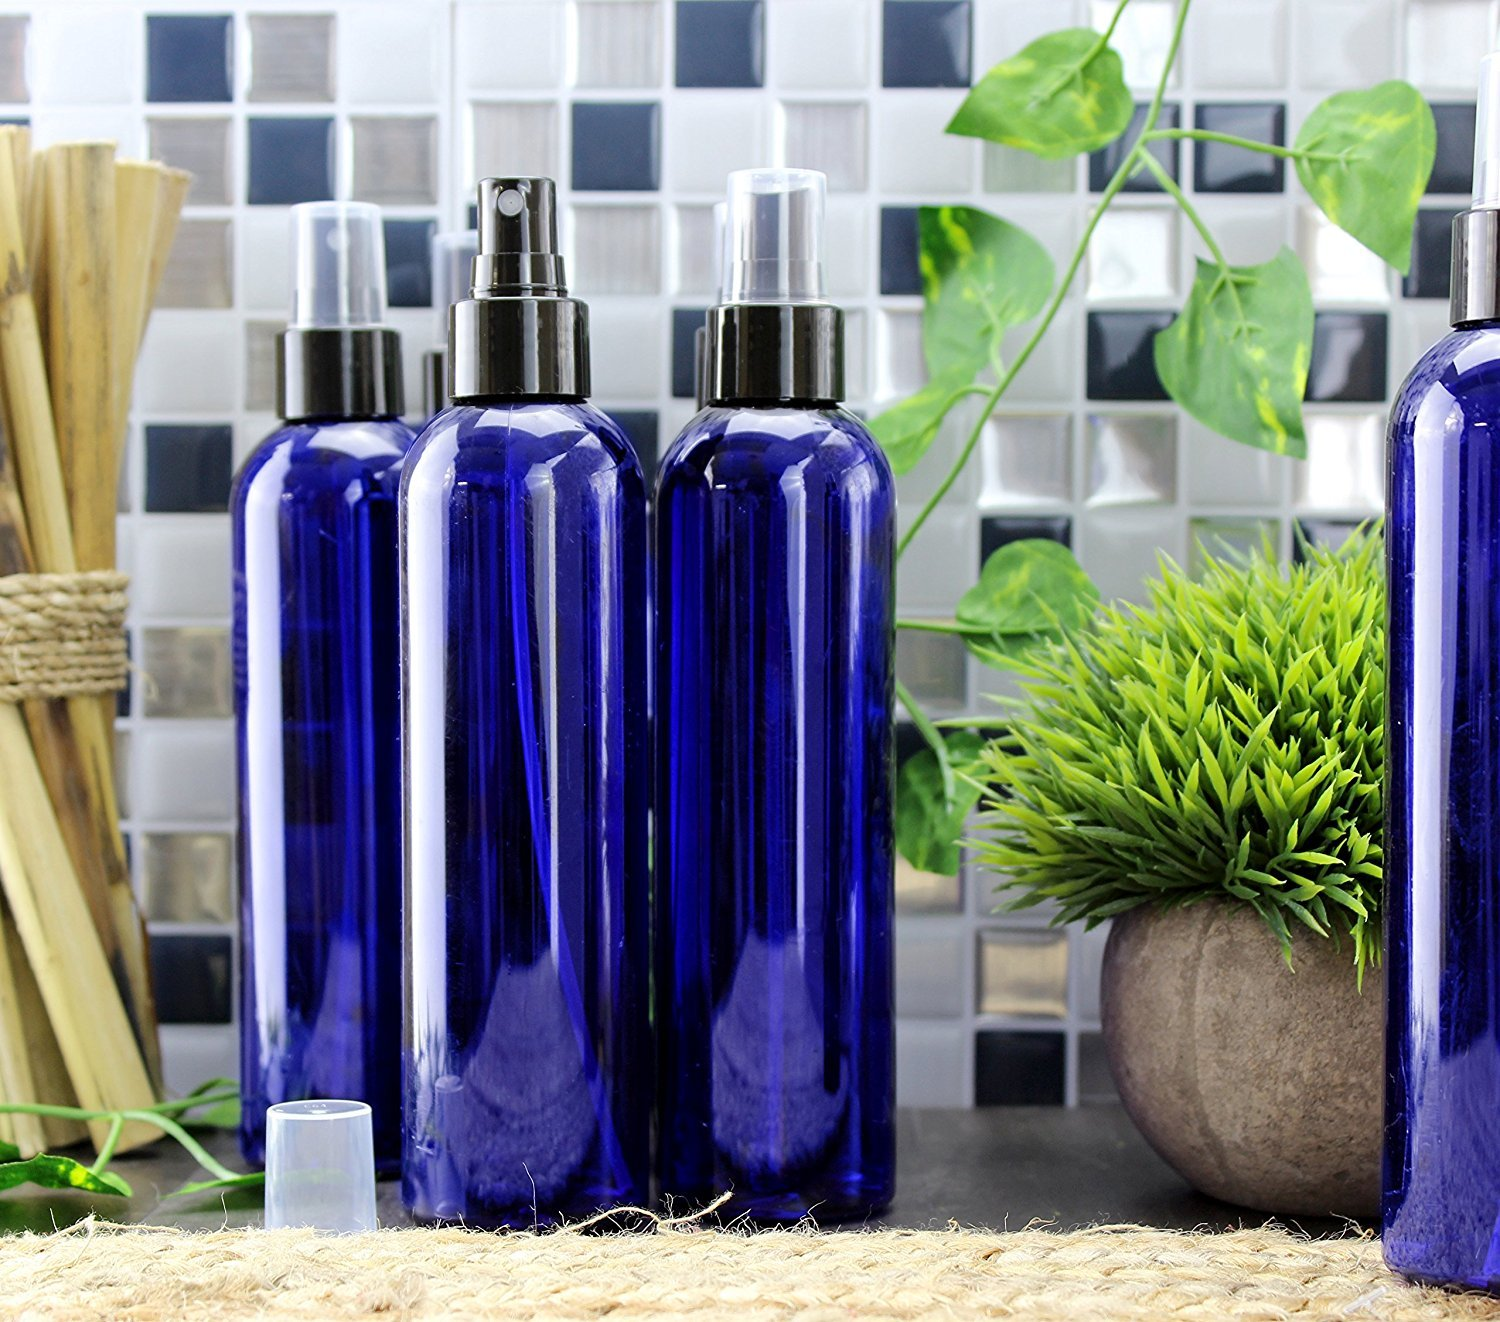 8oz Cobalt Blue Plastic PET Spray Bottles w/Fine Mist Atomizers (6-pack); for DIY Home Cleaning, Aromatherapy, Beauty Care by Cornucopia Brands (Image #2)